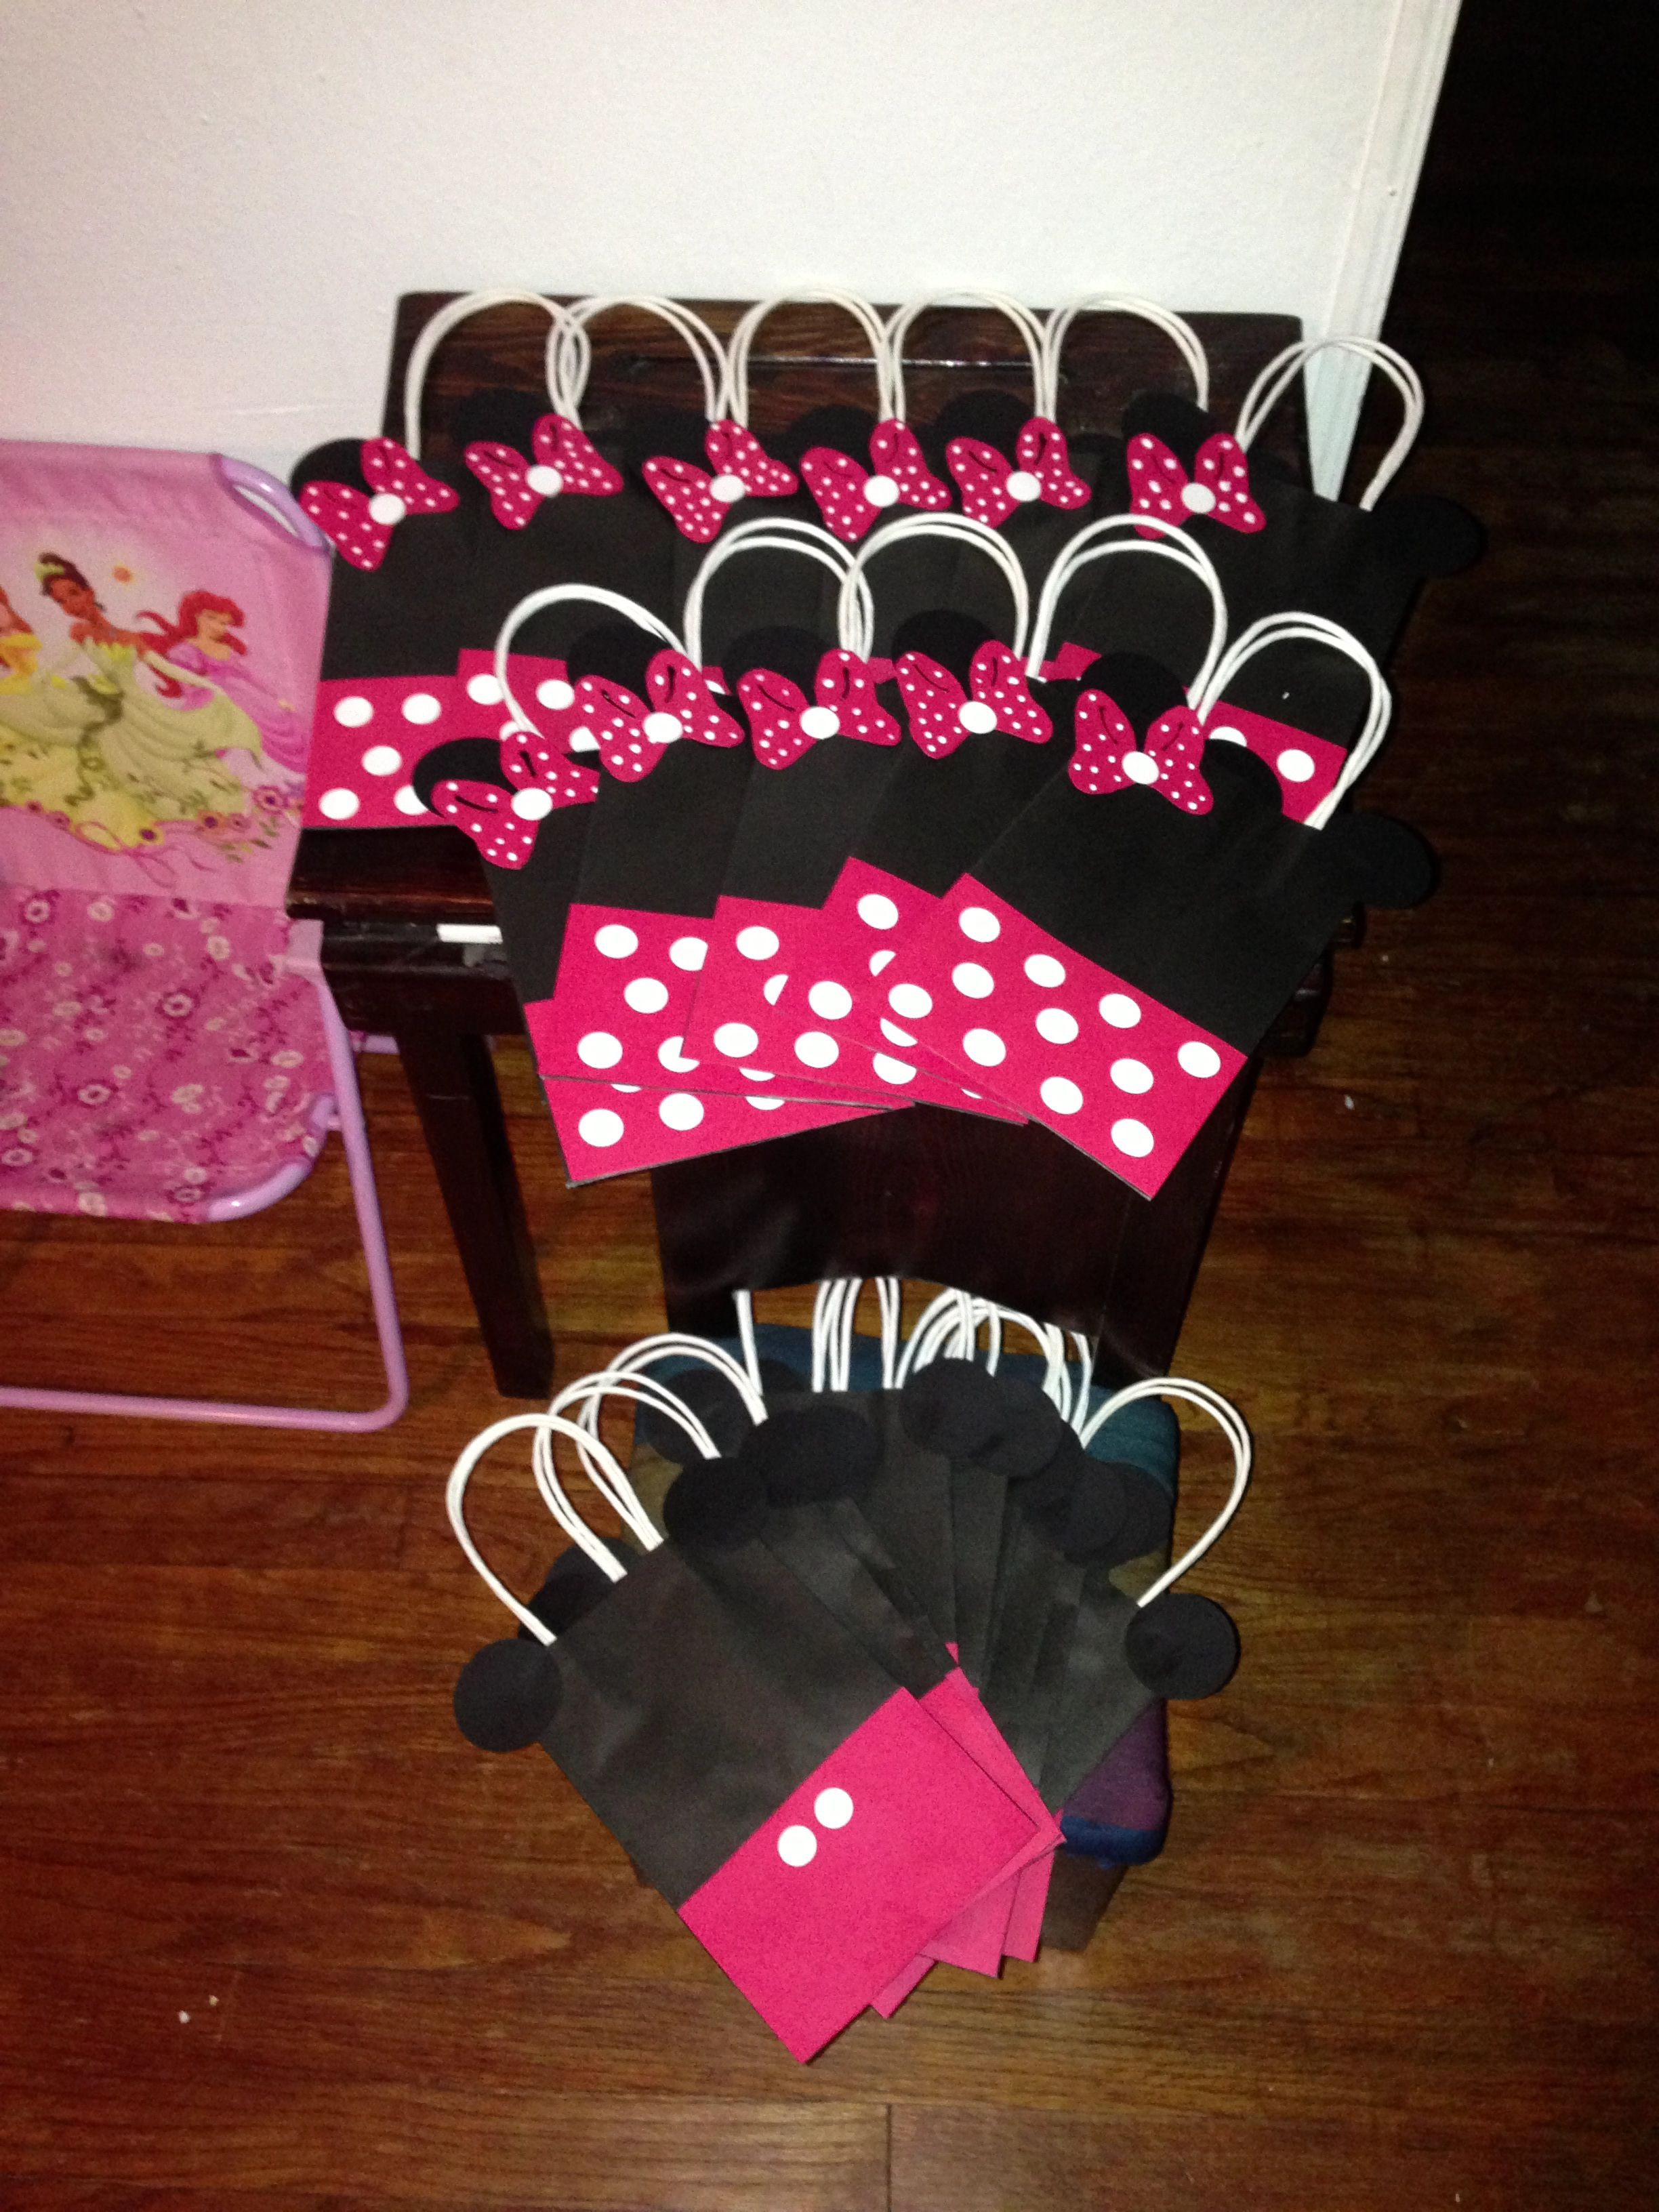 cff57d9c5 bplsa para cotillon minnie | Mimi candy bar | Fiesta de minnie mouse ...